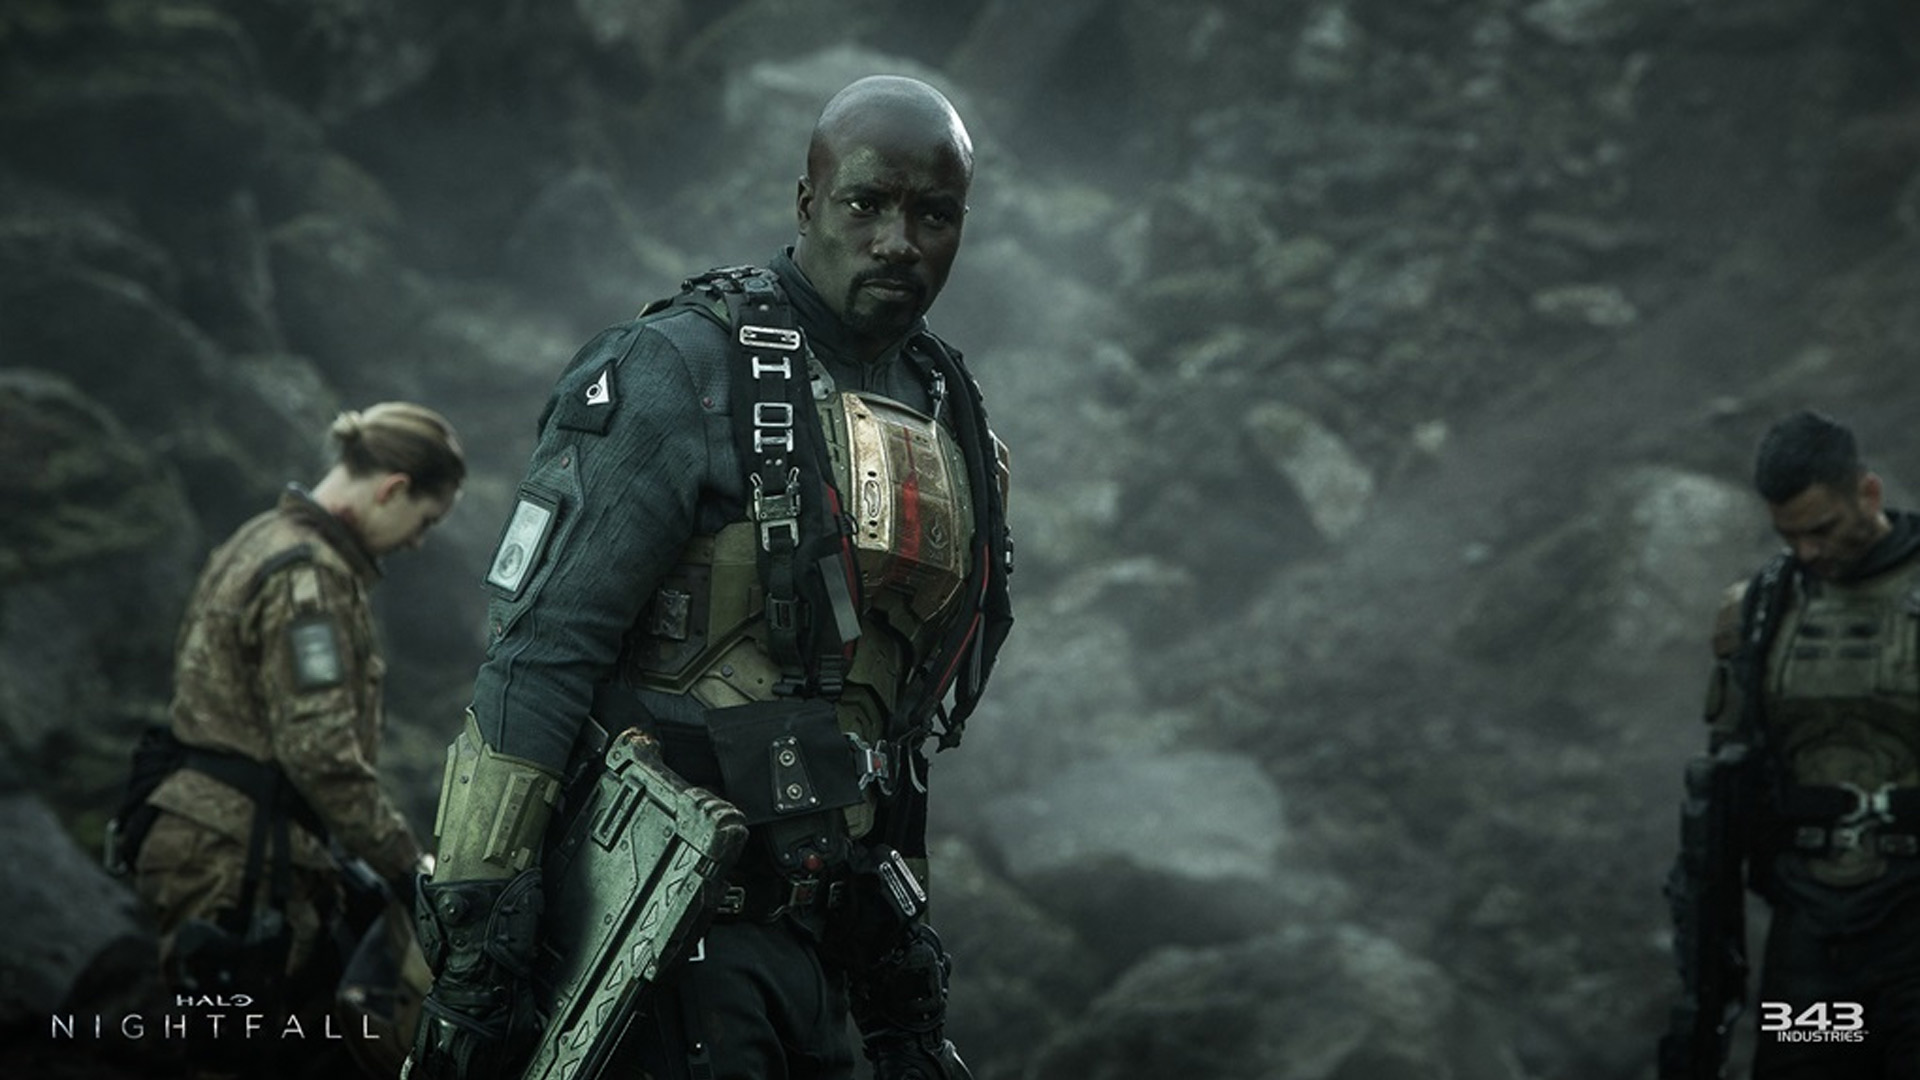 Halo Nightfall Screenshot Agent Locke